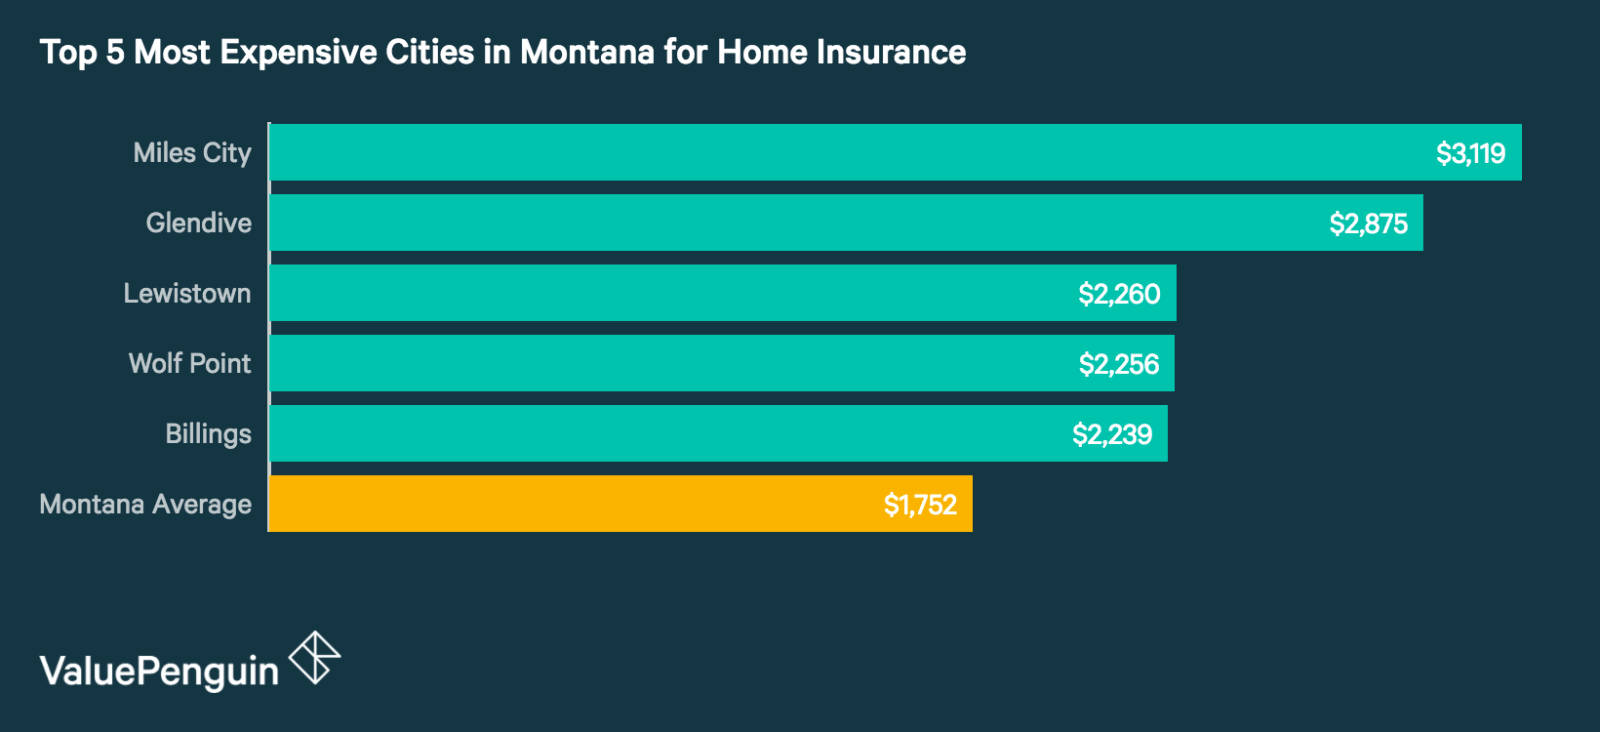 Top 5 Most Expensive Cities in Montana for Homeowners Insurance